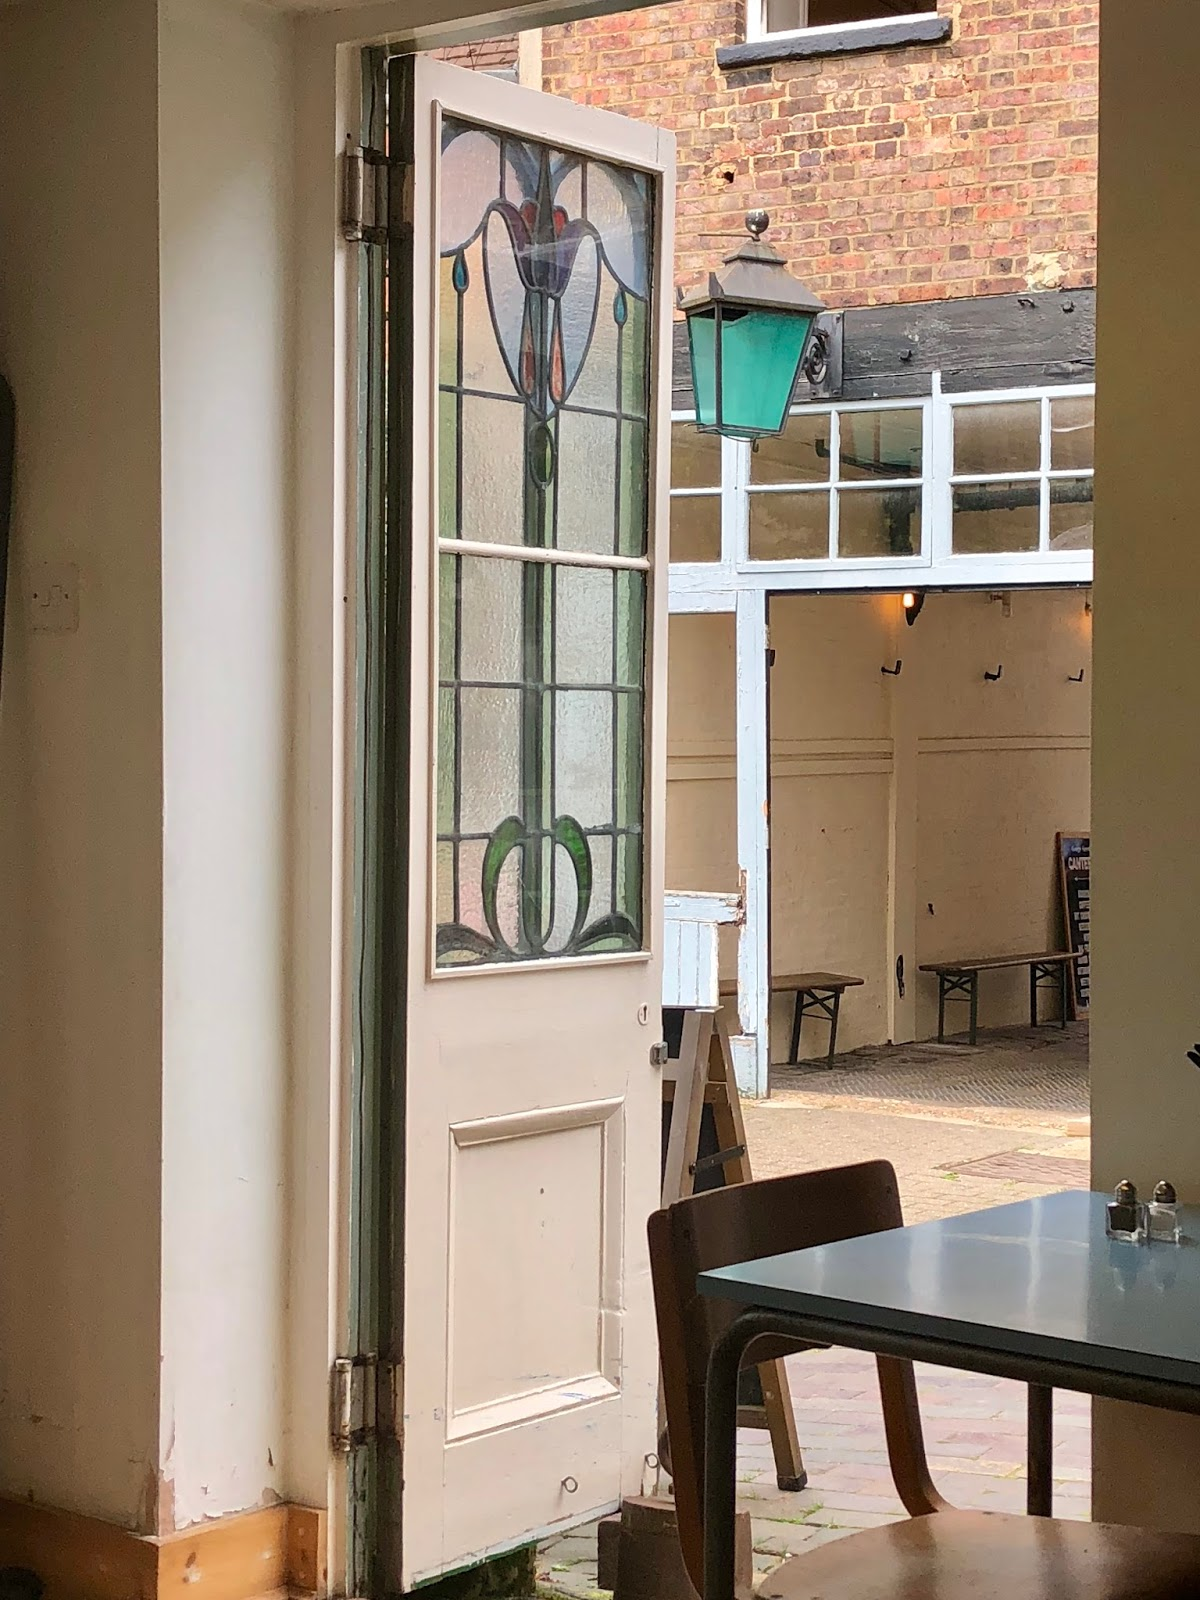 Door and Table in a Cafe